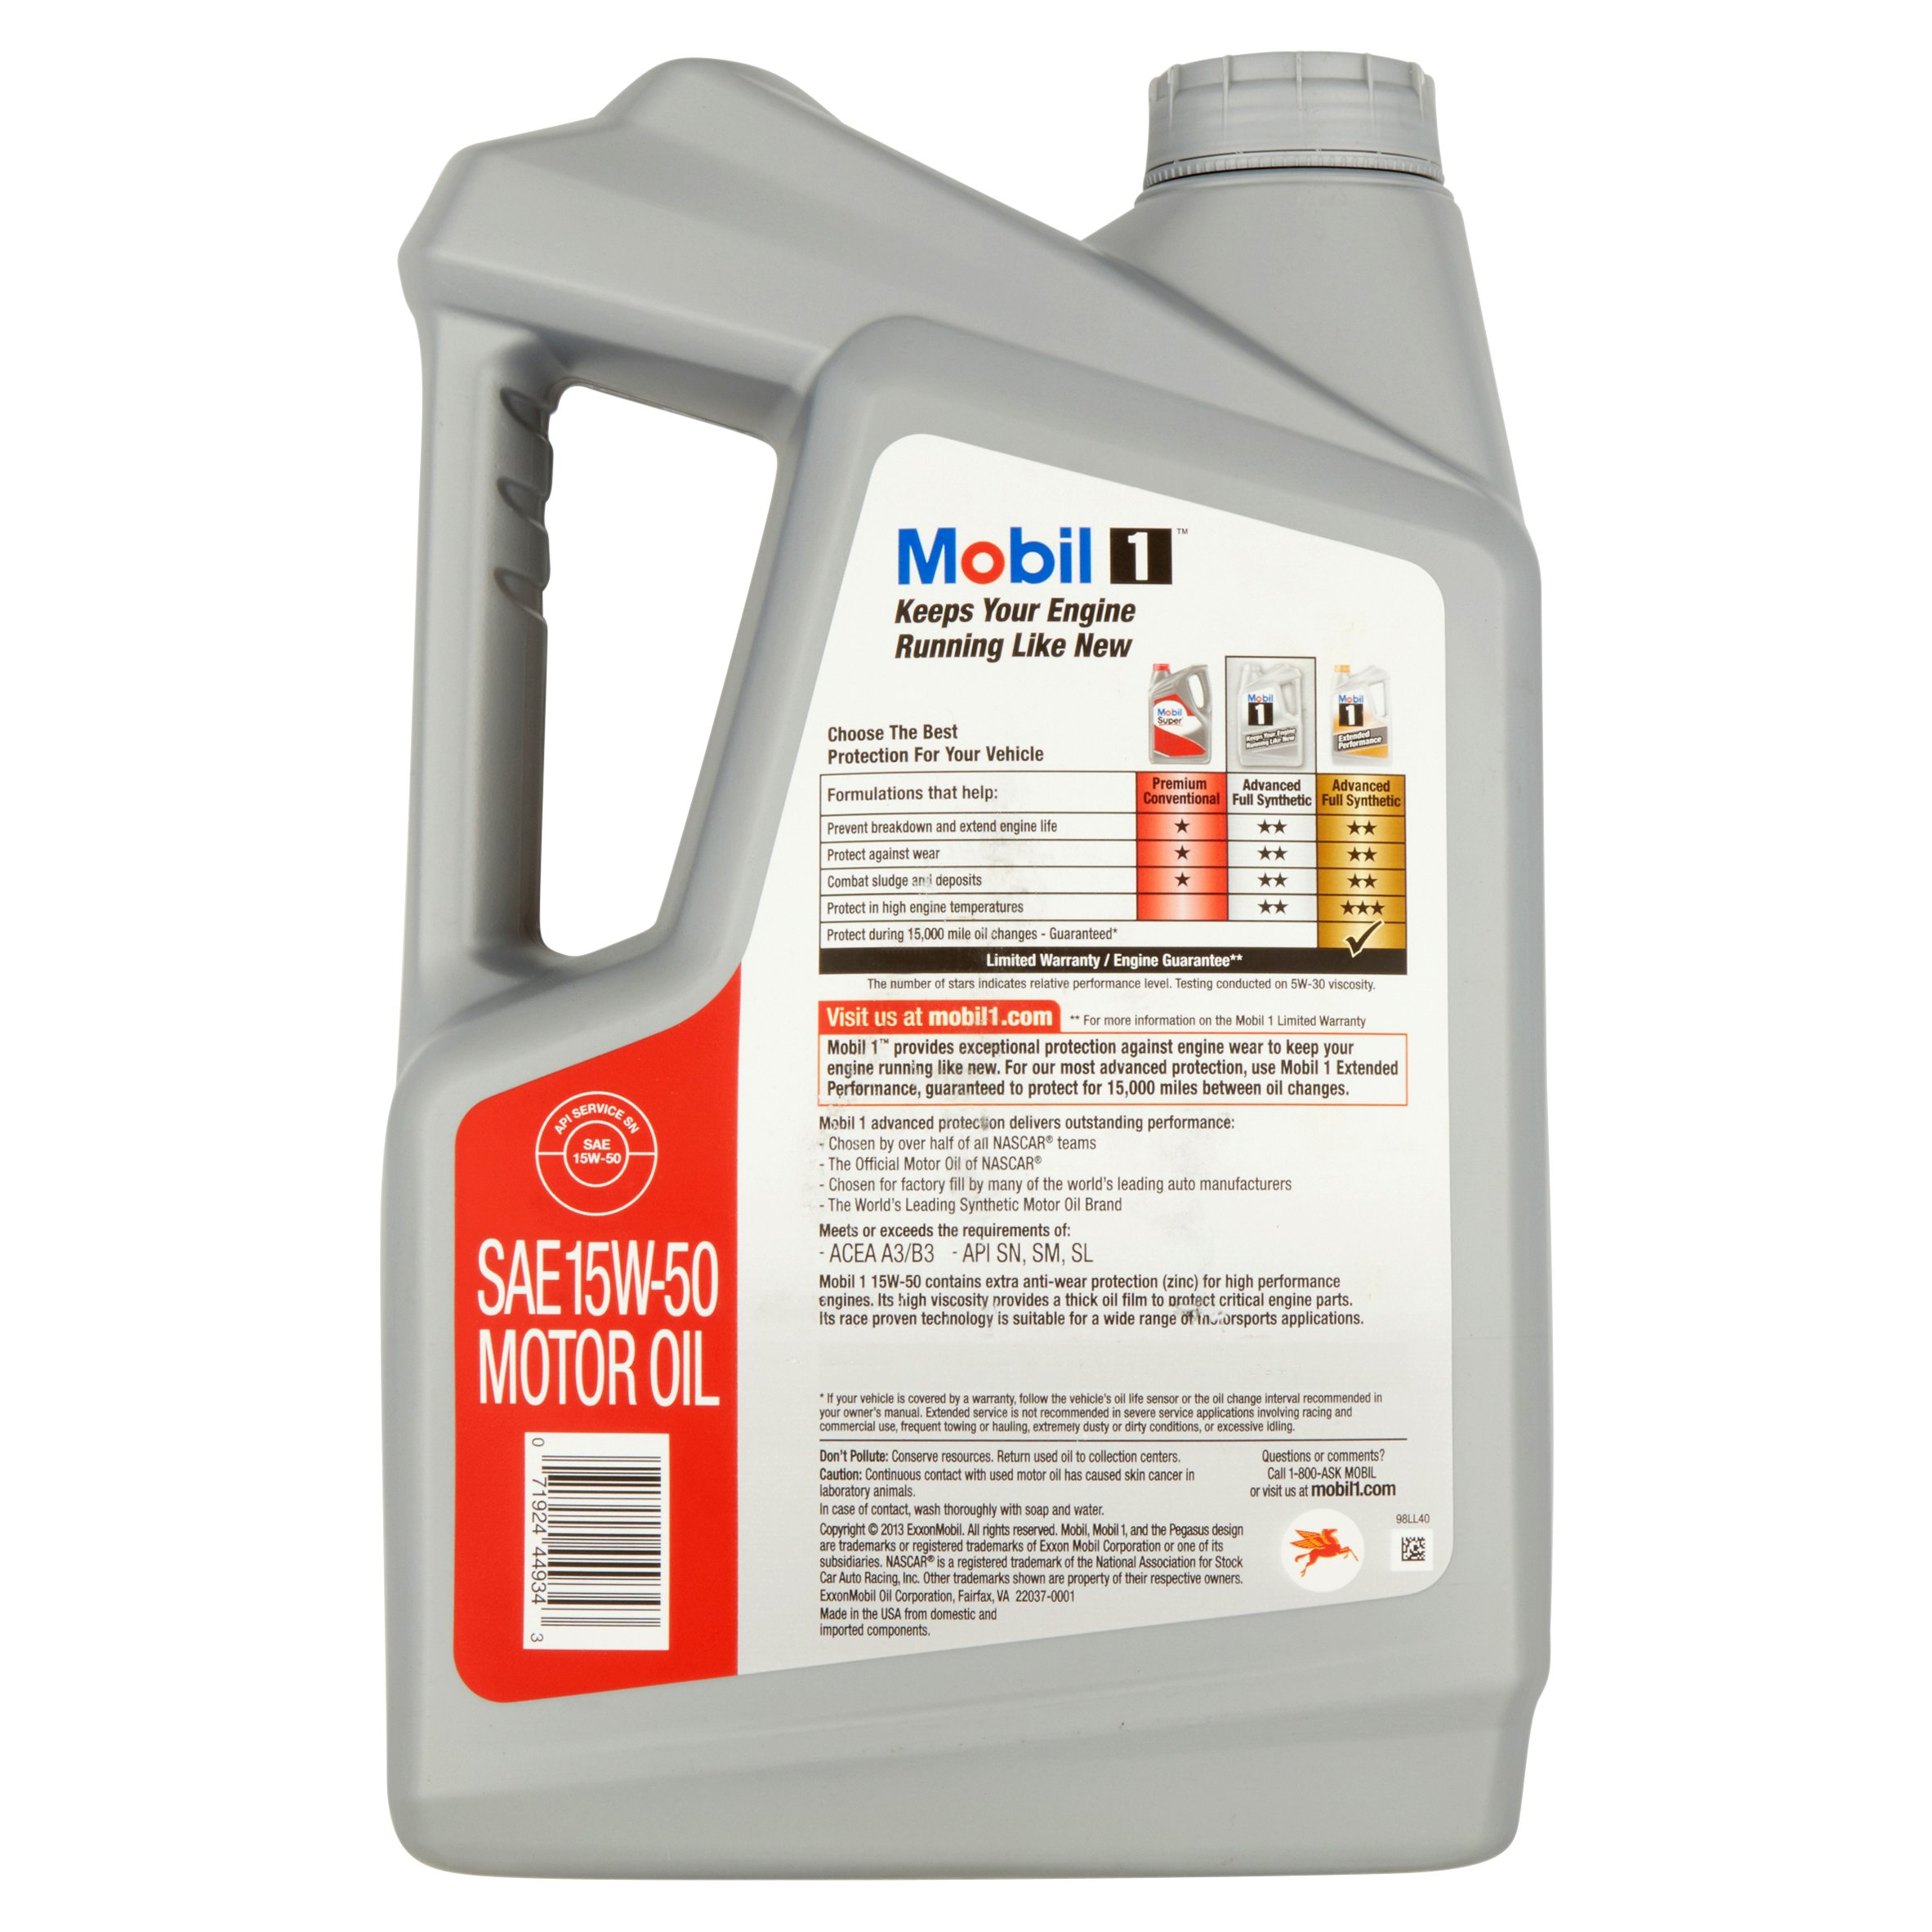 Where To Dispose Of Motor Oil In Toronto